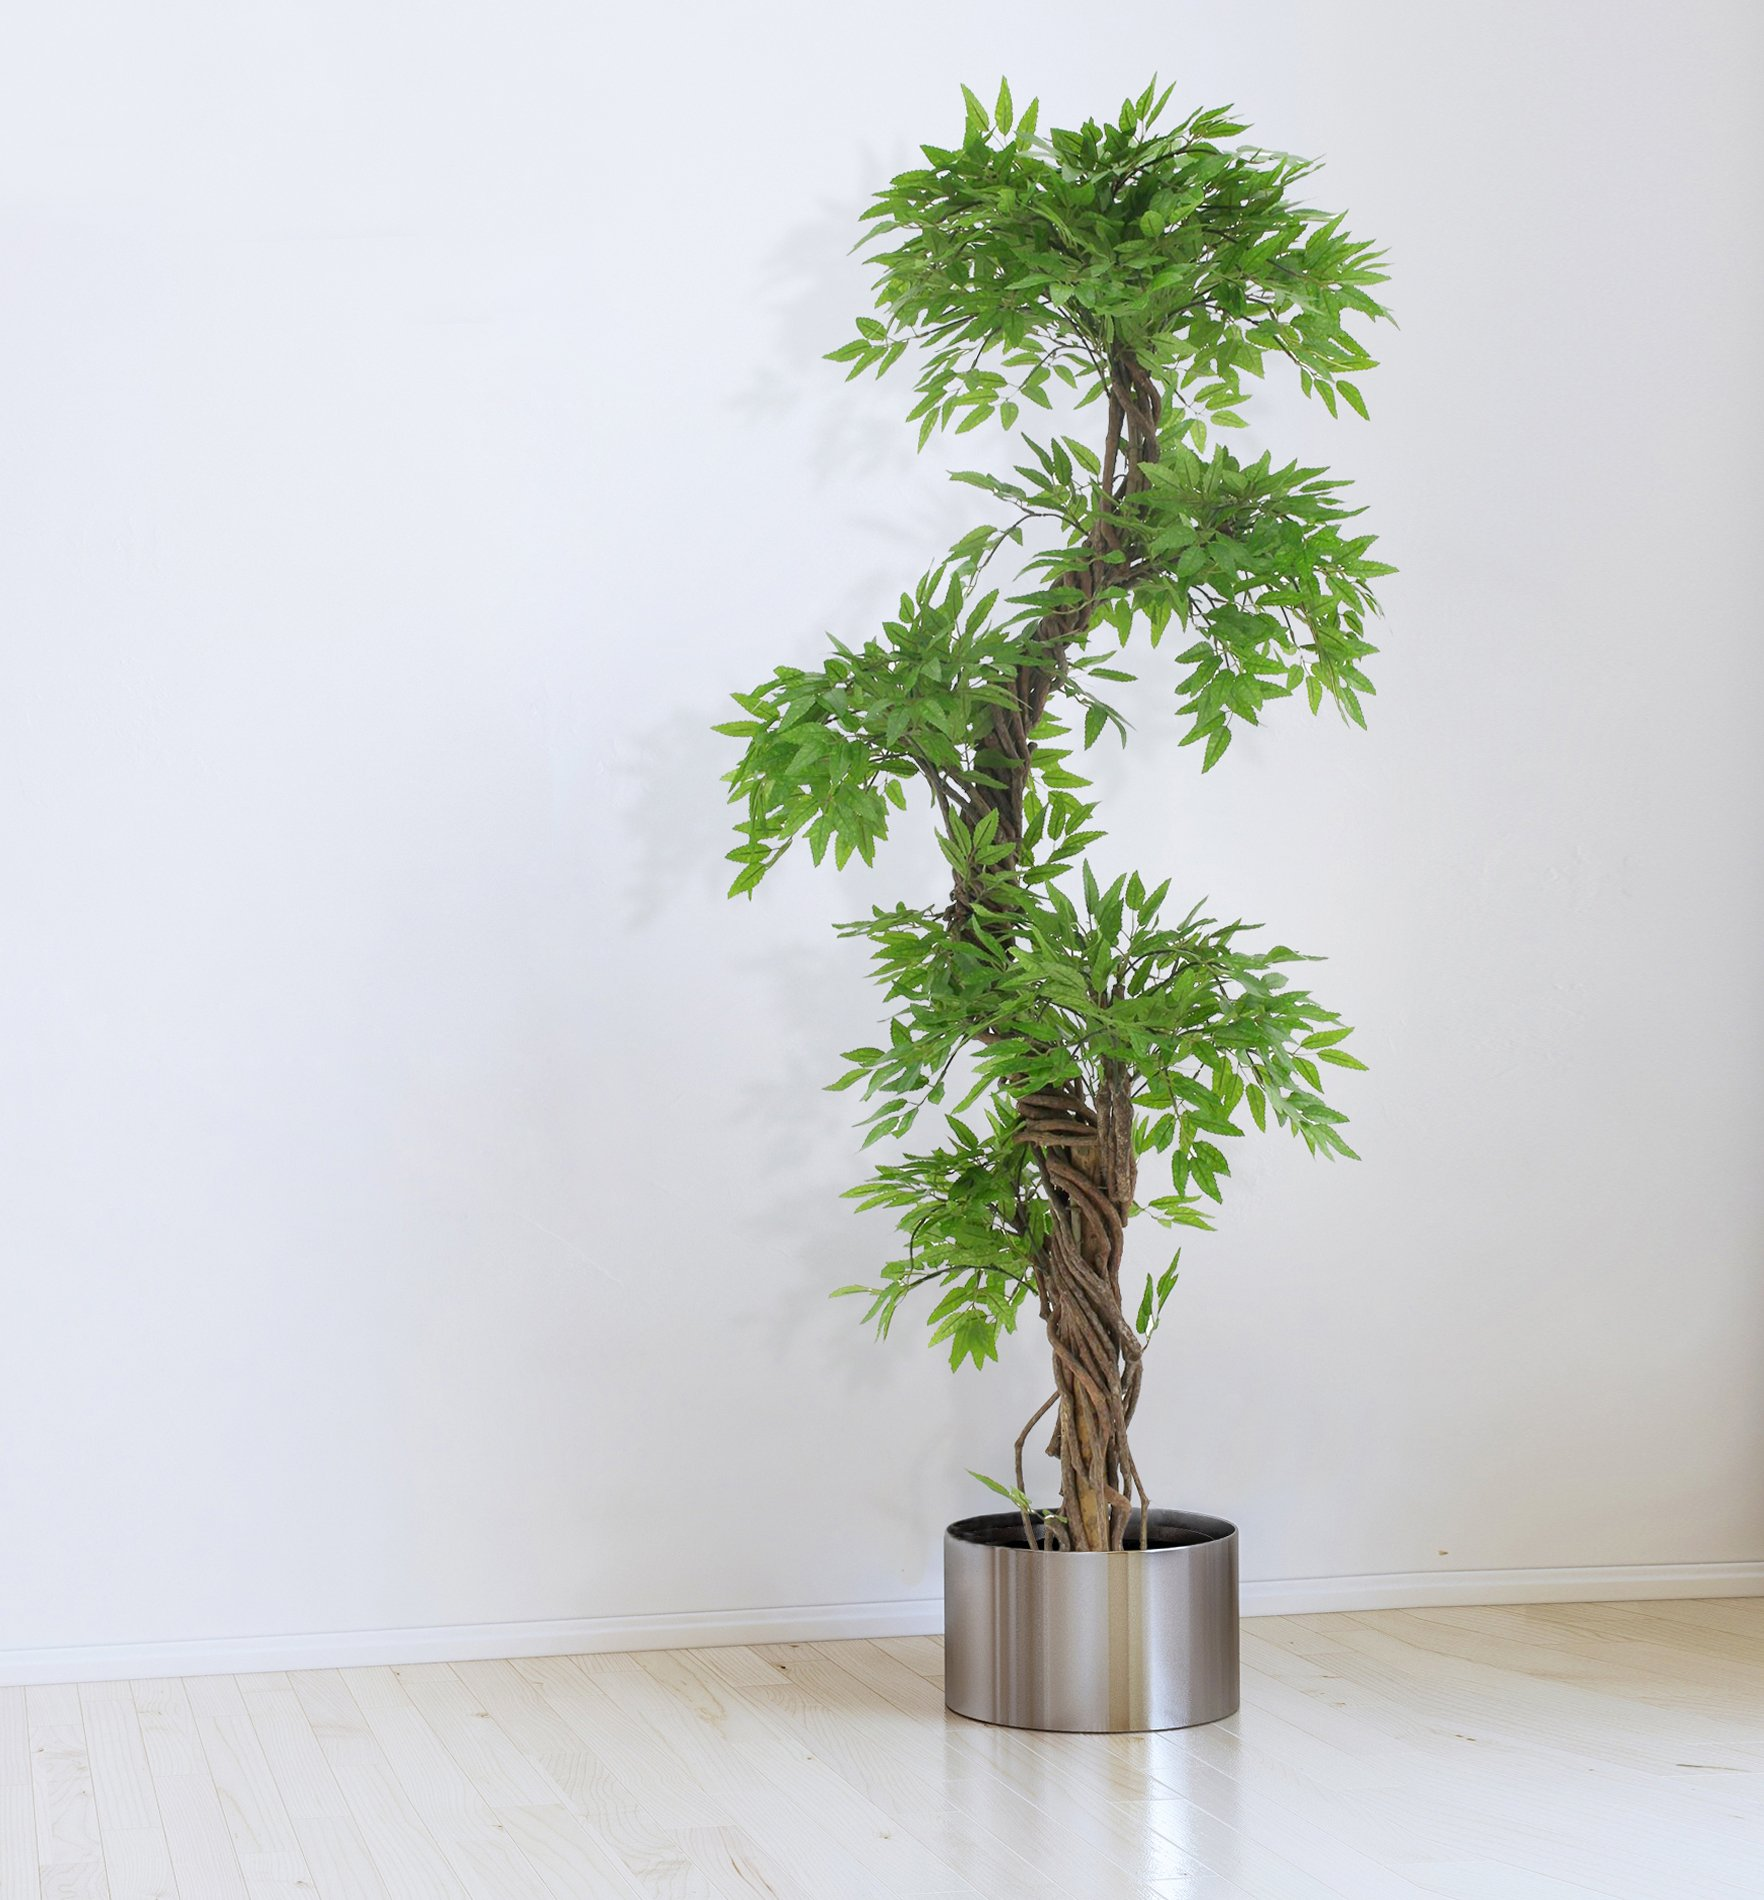 Large Contemporary Artificial Plants and Trees, Luxury Japanese Fruticosa Tree, Handmade Using Real Bark & Synthetic Leaves, Indoor Plant - 165cm Tall by Vert Lifestyle by Vert Lifestyle